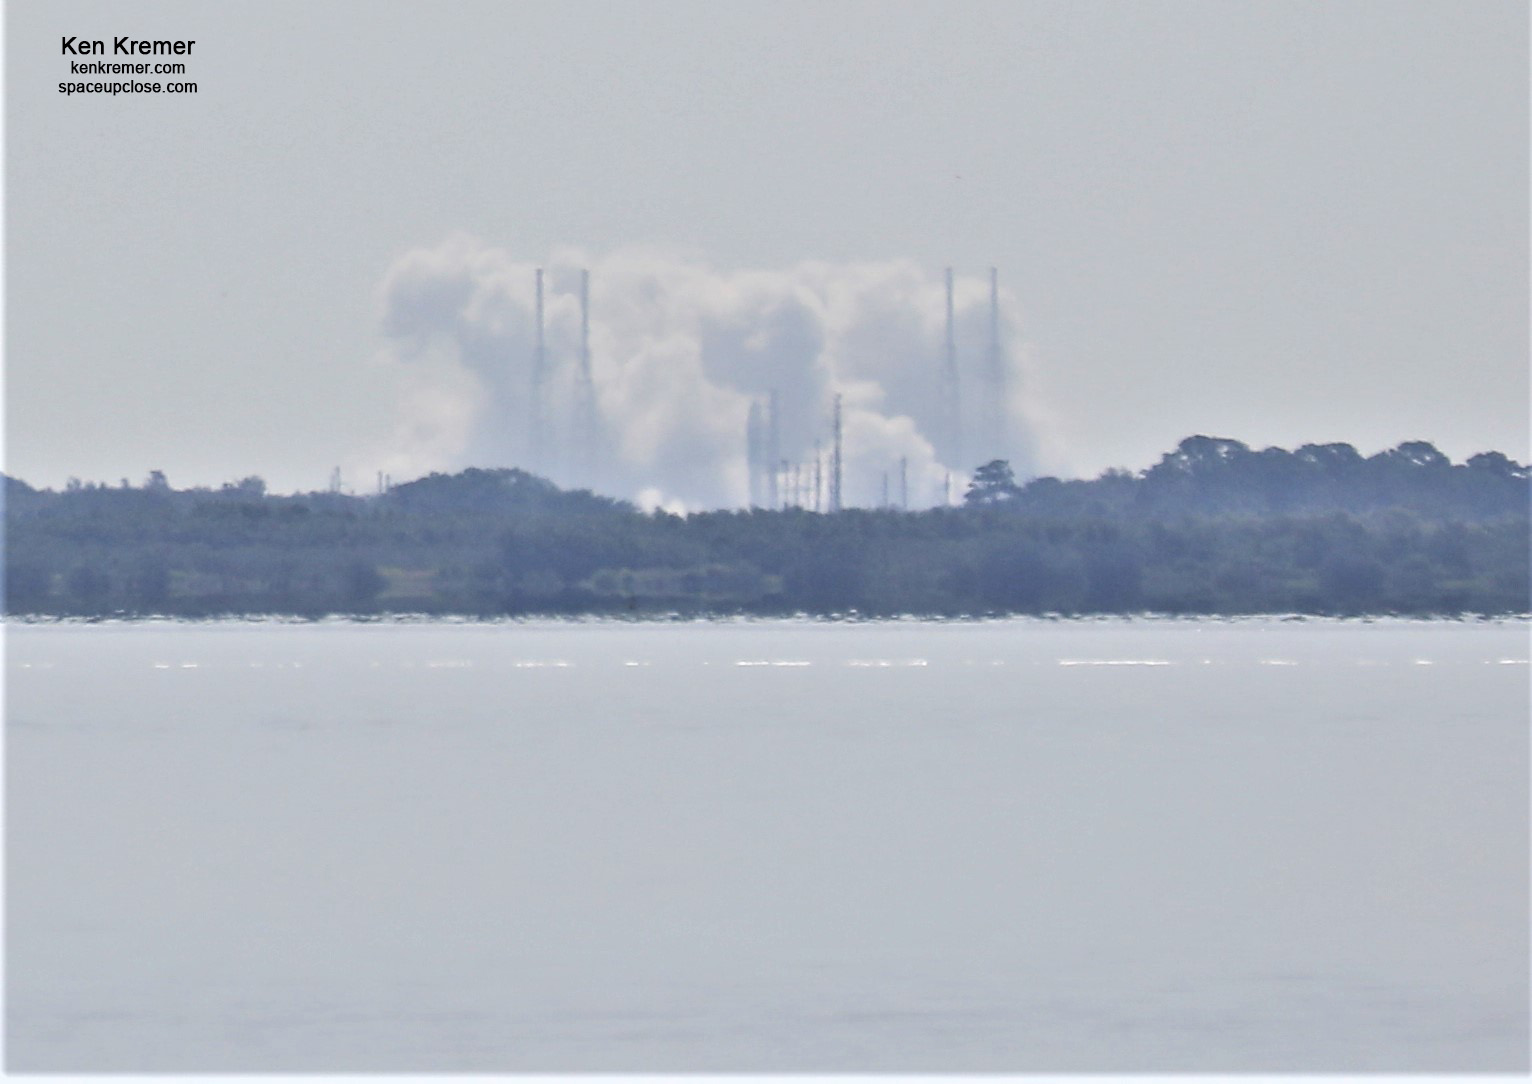 SpaceX Completes Falcon 9 Hot Fire for GPS Launch – 2nd in 16 Hours with 2 Falcons on 2 Launch Pads as Starlink Sats Awaits Liftoff: Photos